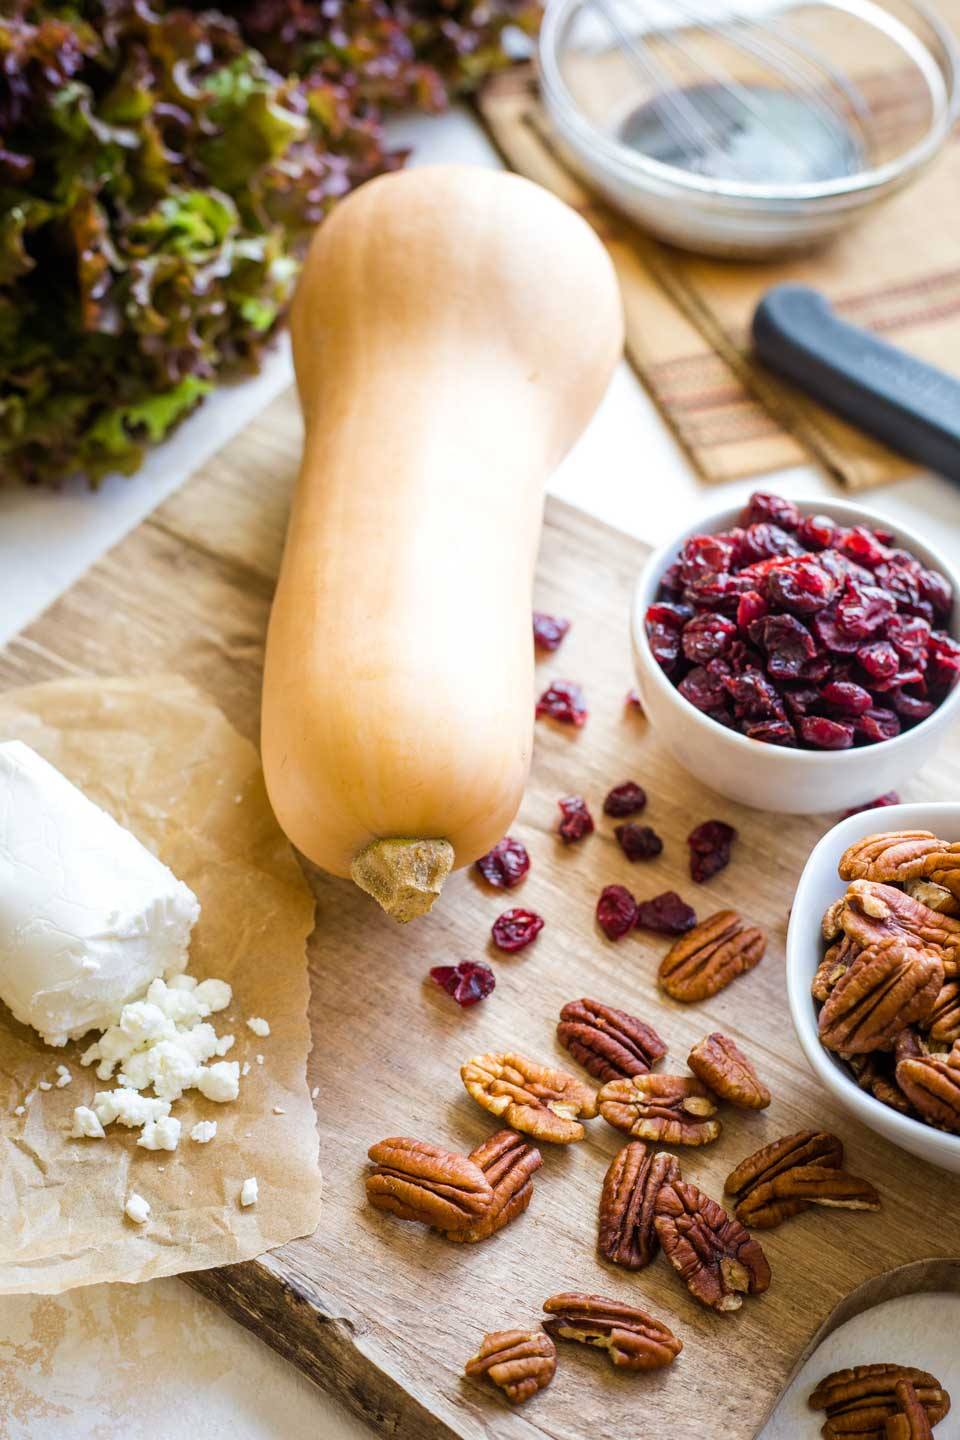 ingredients for Thanksgiving Salad - butternut squash, log of goat cheese, dishes of pecans and cranberries, head of red leaf lettuce